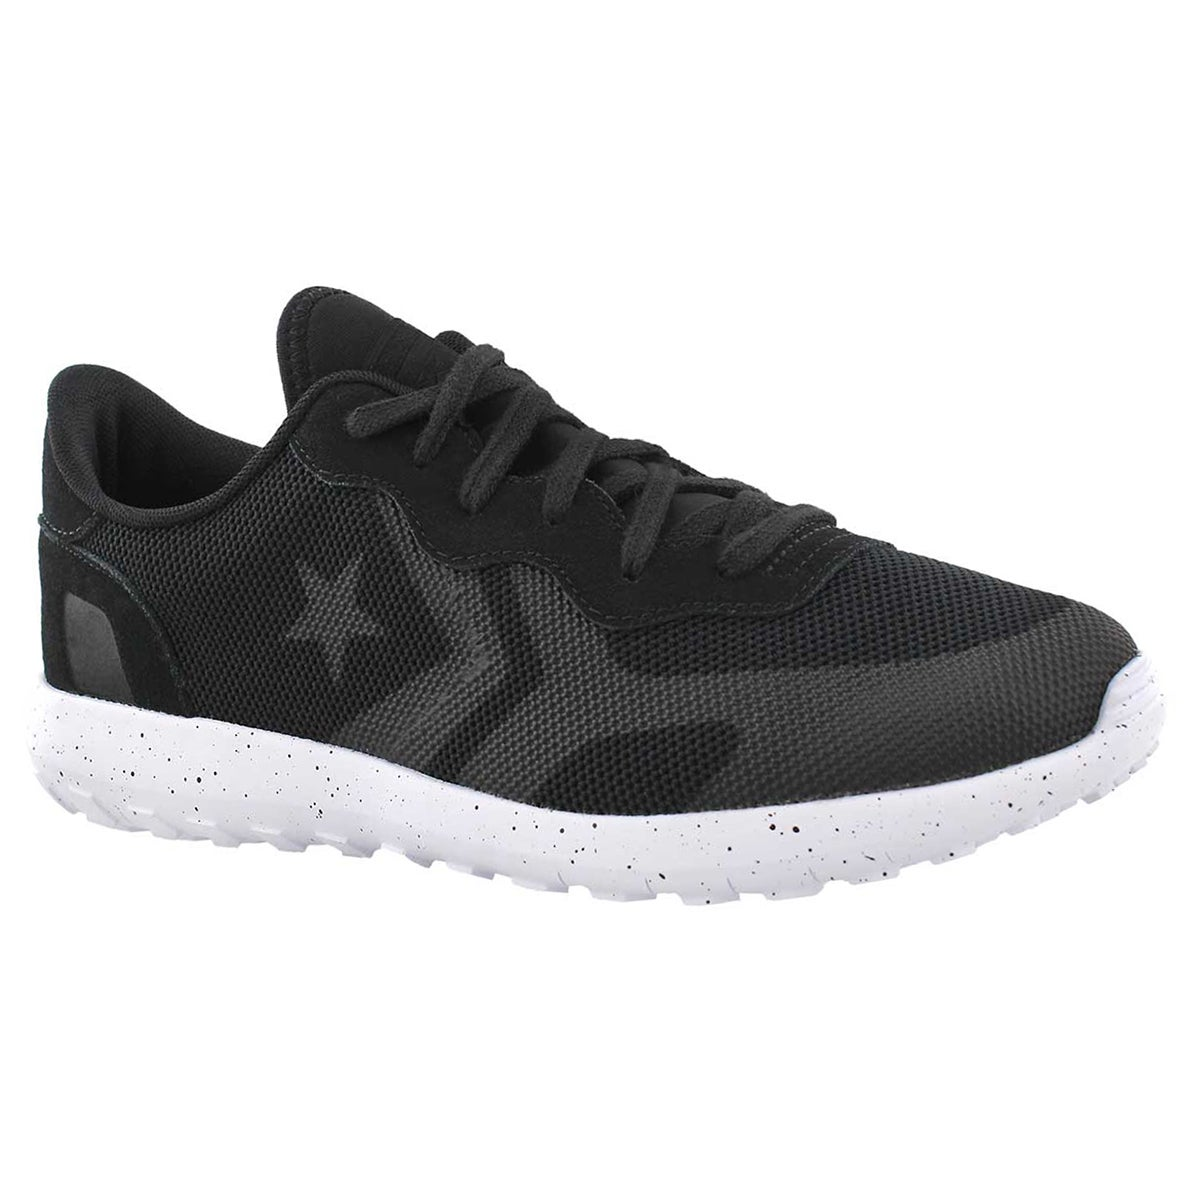 Men's THUNDERBOLT black lace up sneakers